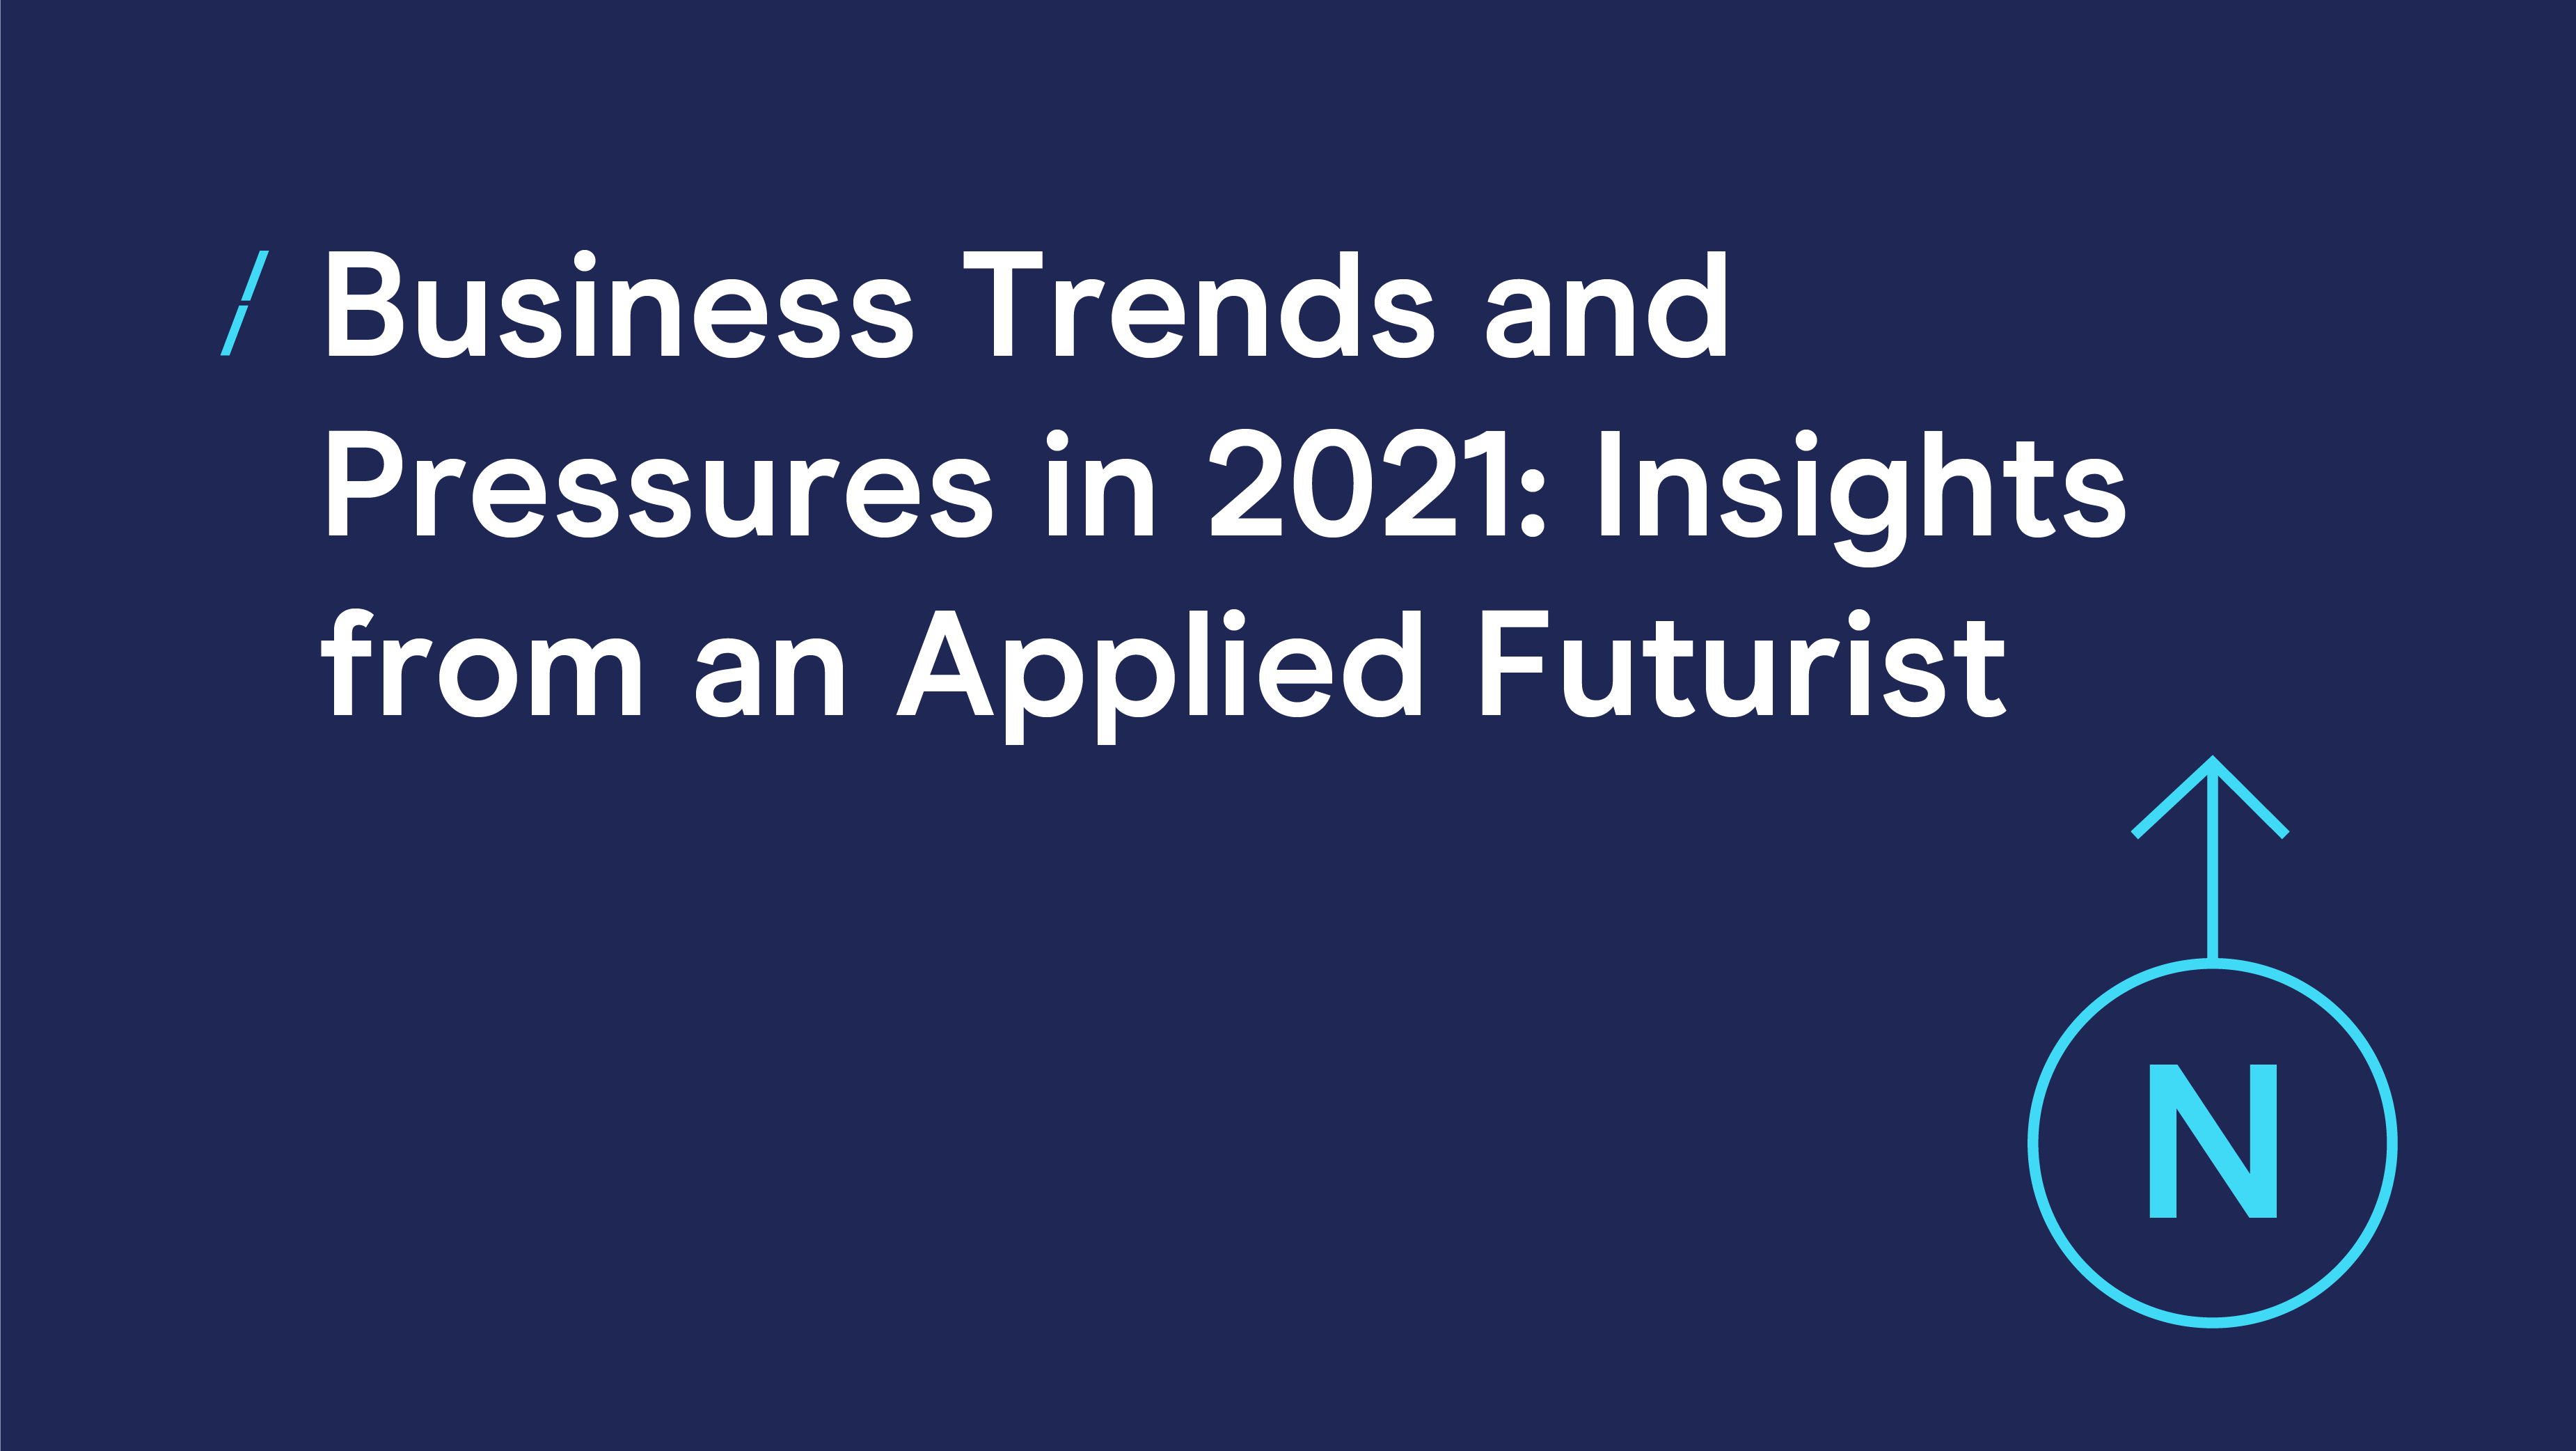 Business Trends and Pressures in 2021_DMA North.png